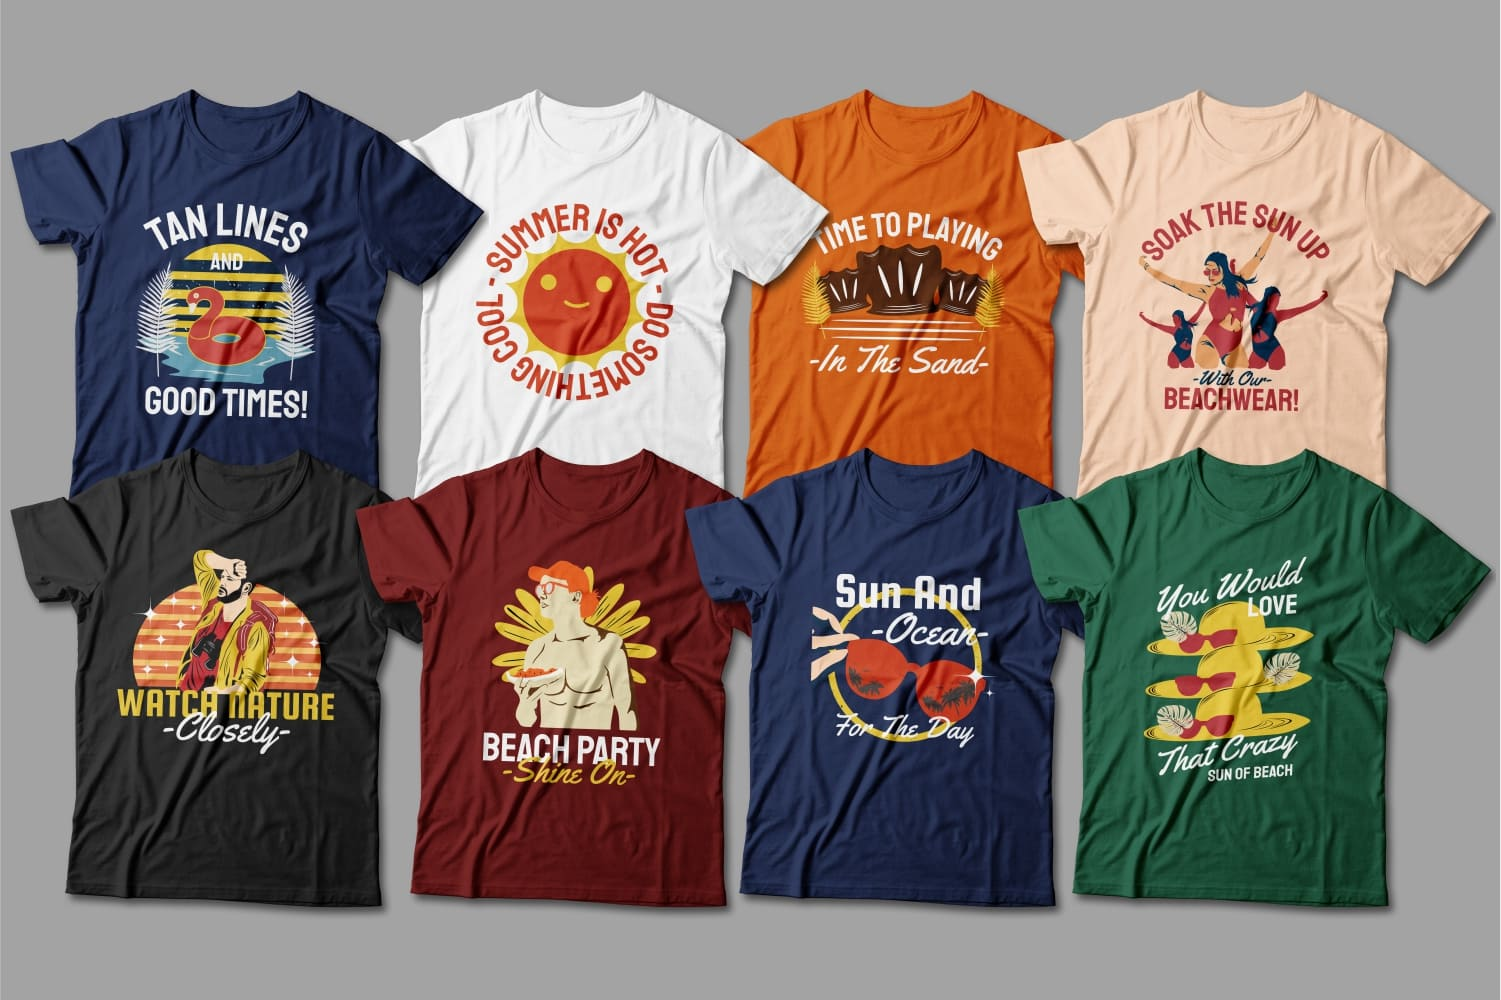 Summer T-shirts with the image of the attributes of summer holidays.